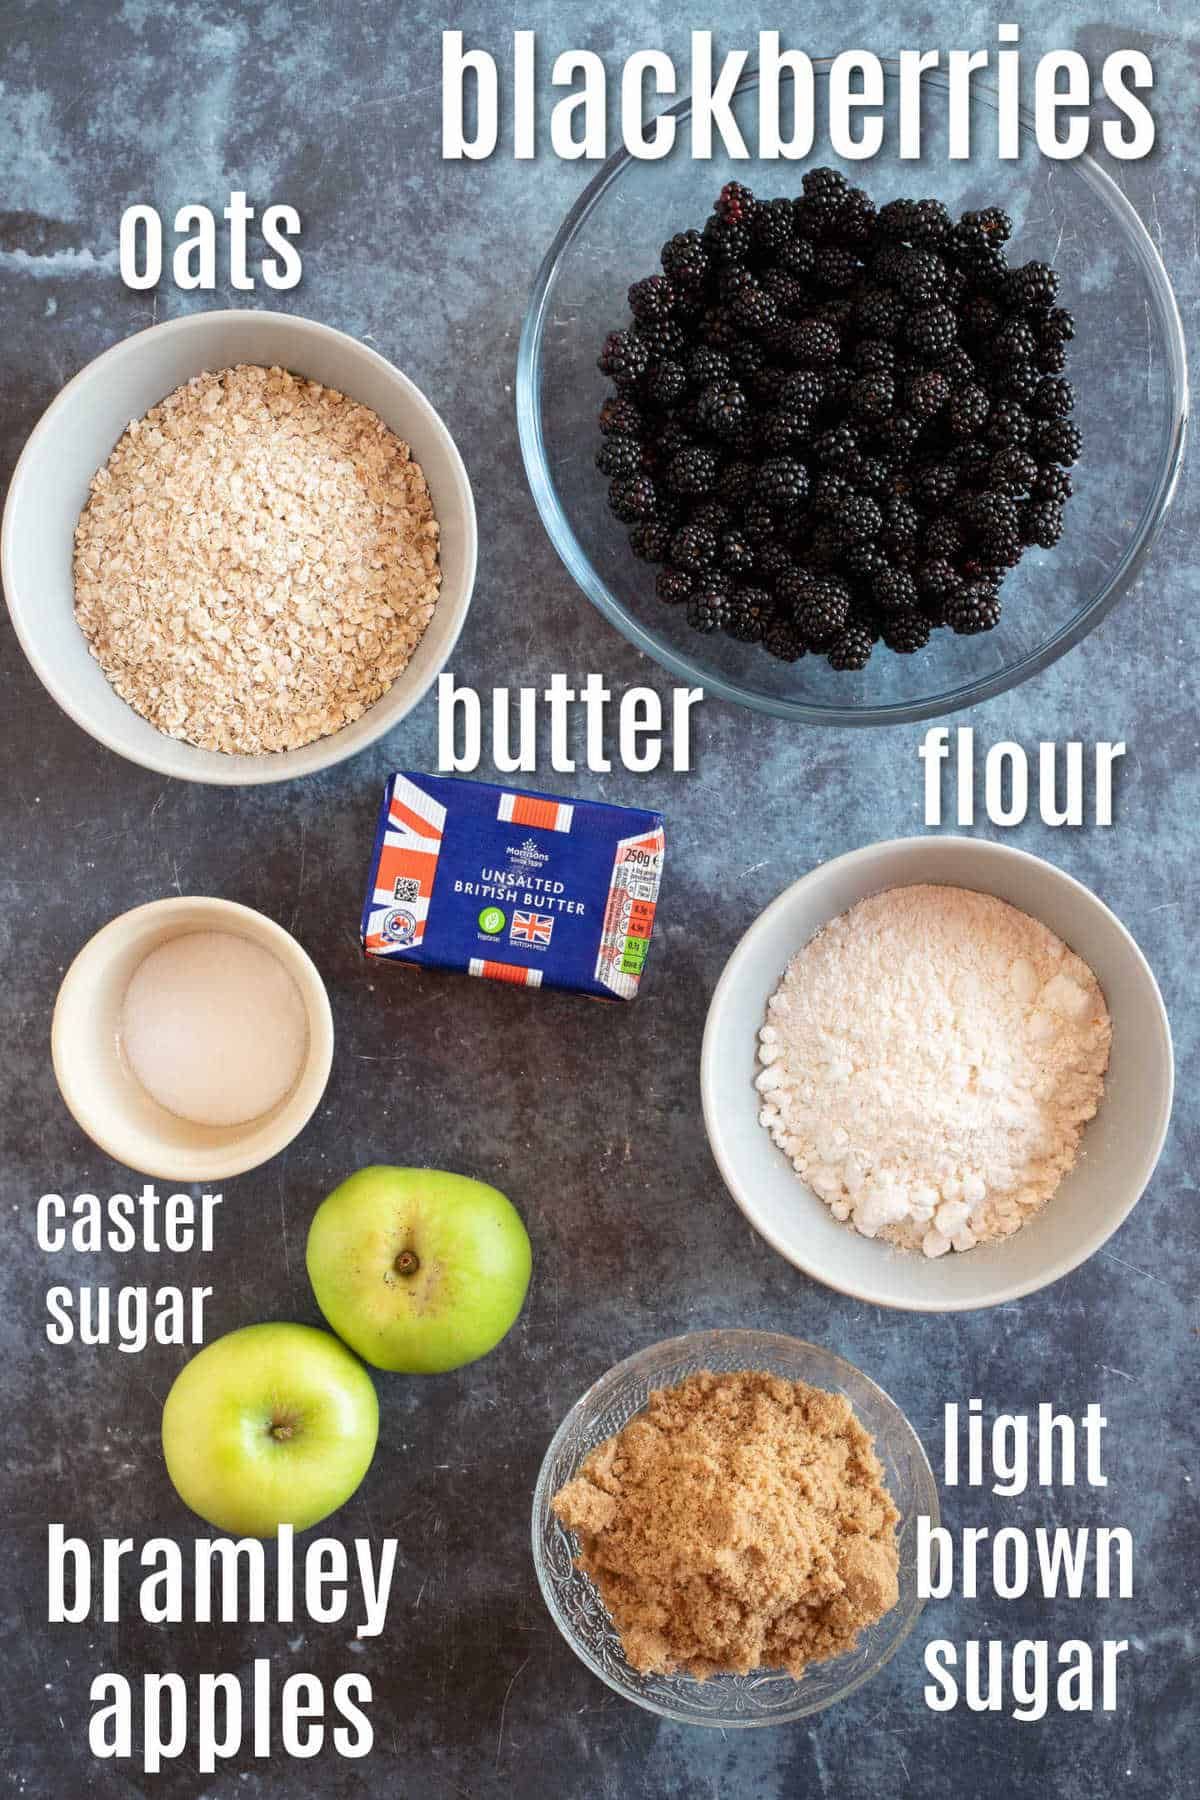 Ingredients for blackberry crumble.